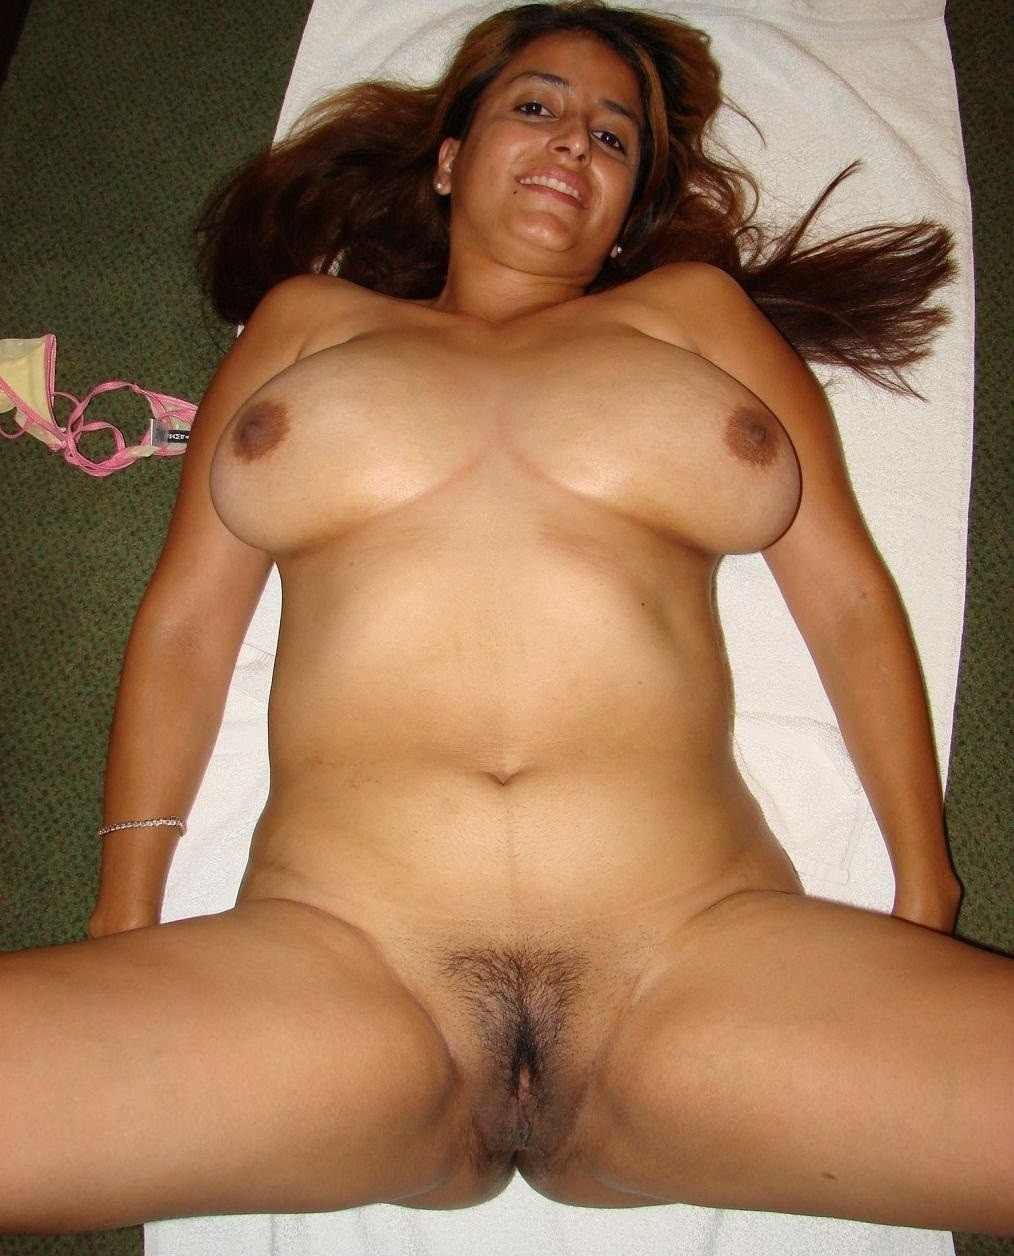 Mature indian women nude